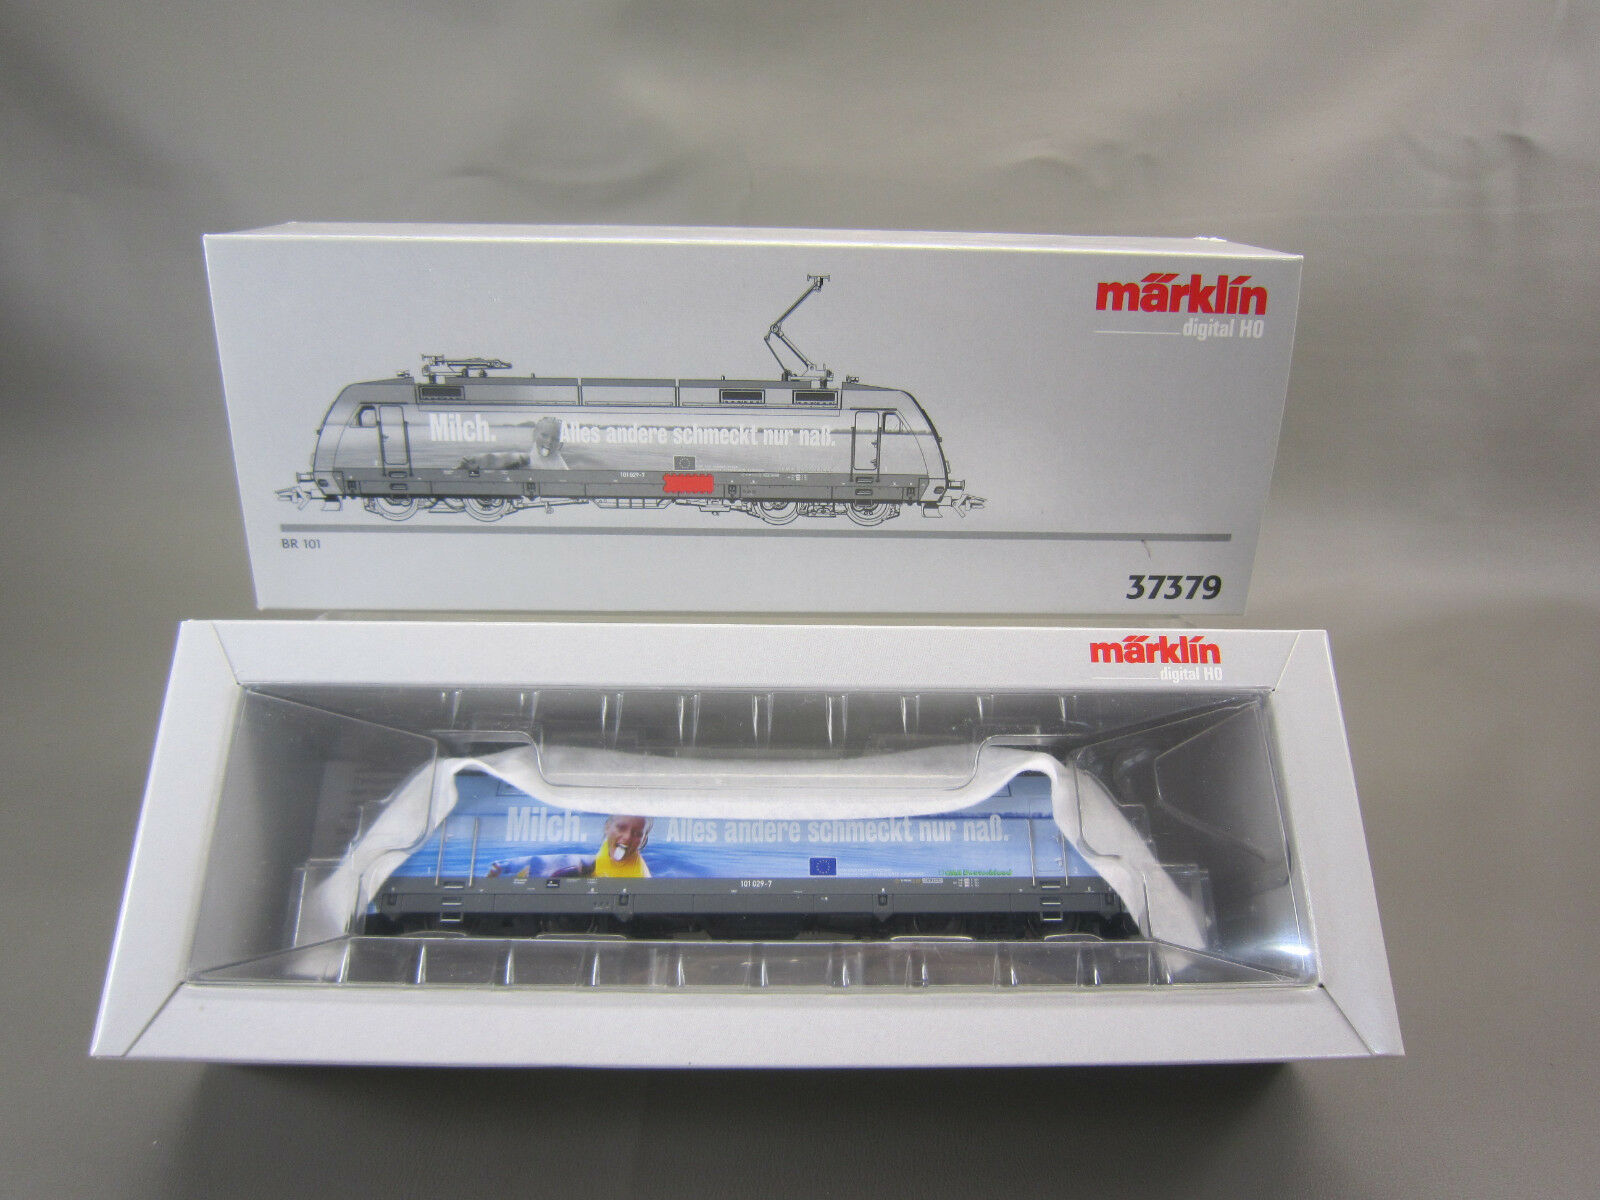 MARKLIN HO SCALE 37379 DIGITAL BR 101 MILCH ELECTRIC LOCOMOTIVE